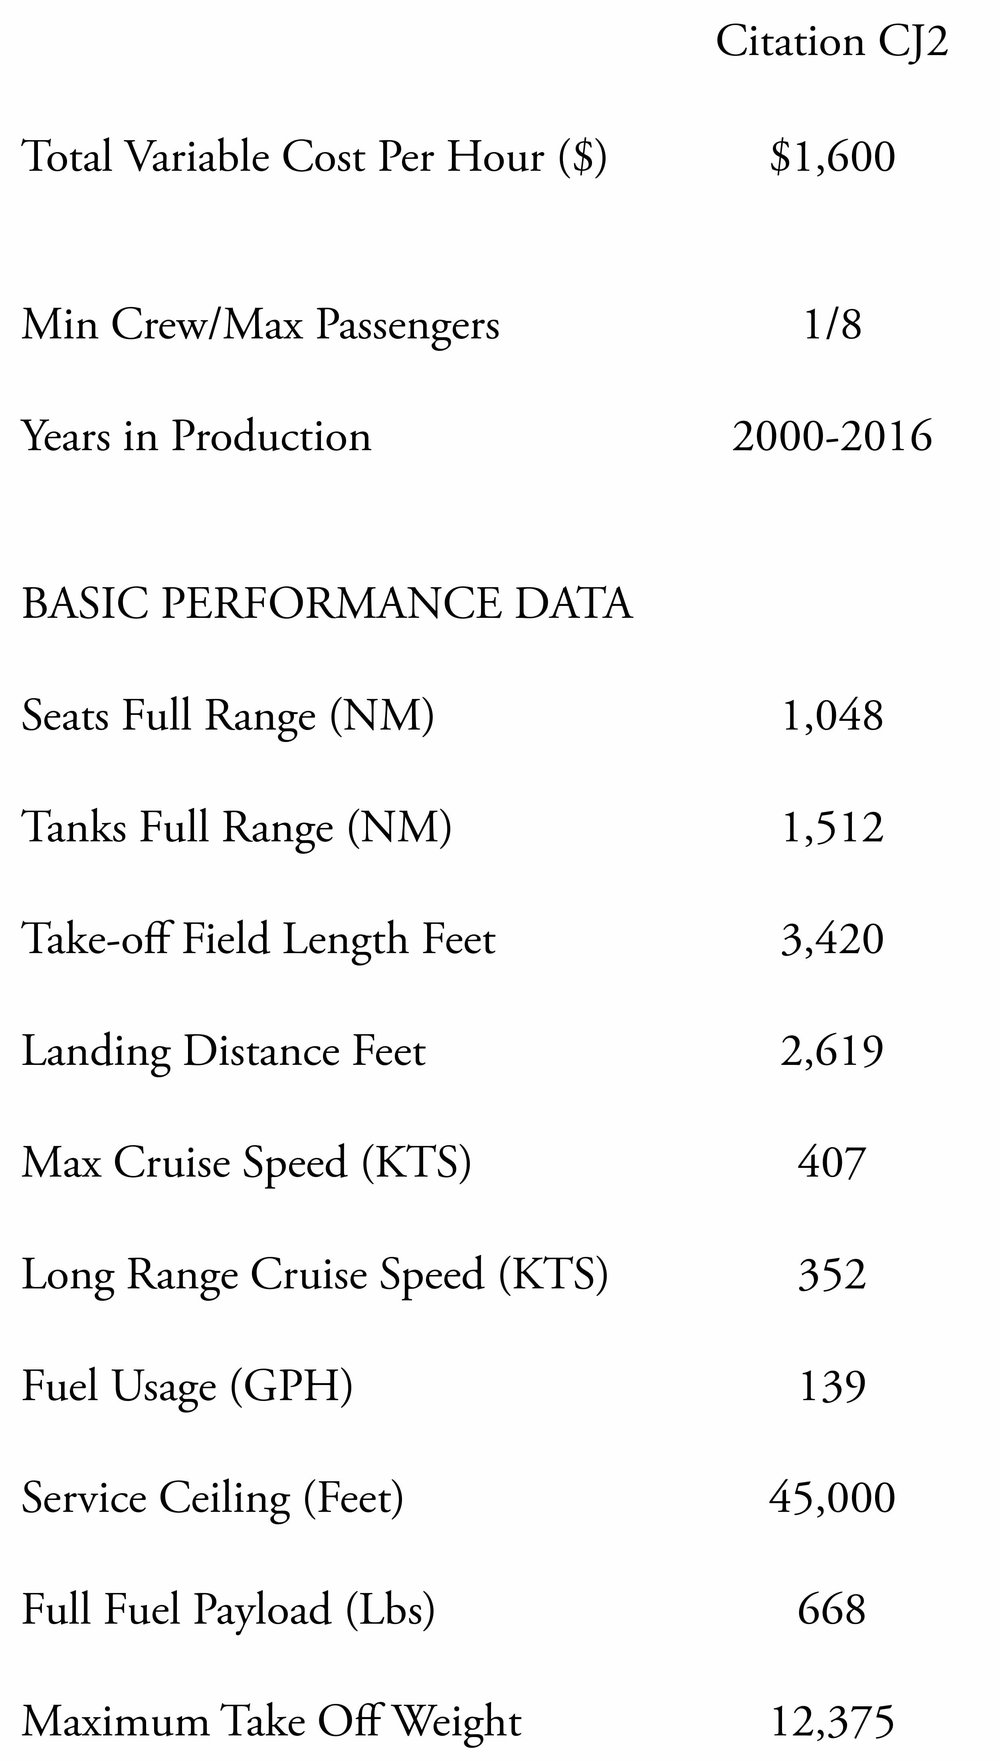 Citation CJ2 spec sheet: total variable cost per hour, minimum crew and passengers, years in production, seats full range, tanks full range, take-off field length, landing distance, max cruise speed, long range cruise speed, fuel usage, service ceiling, full fuel payload, and more.